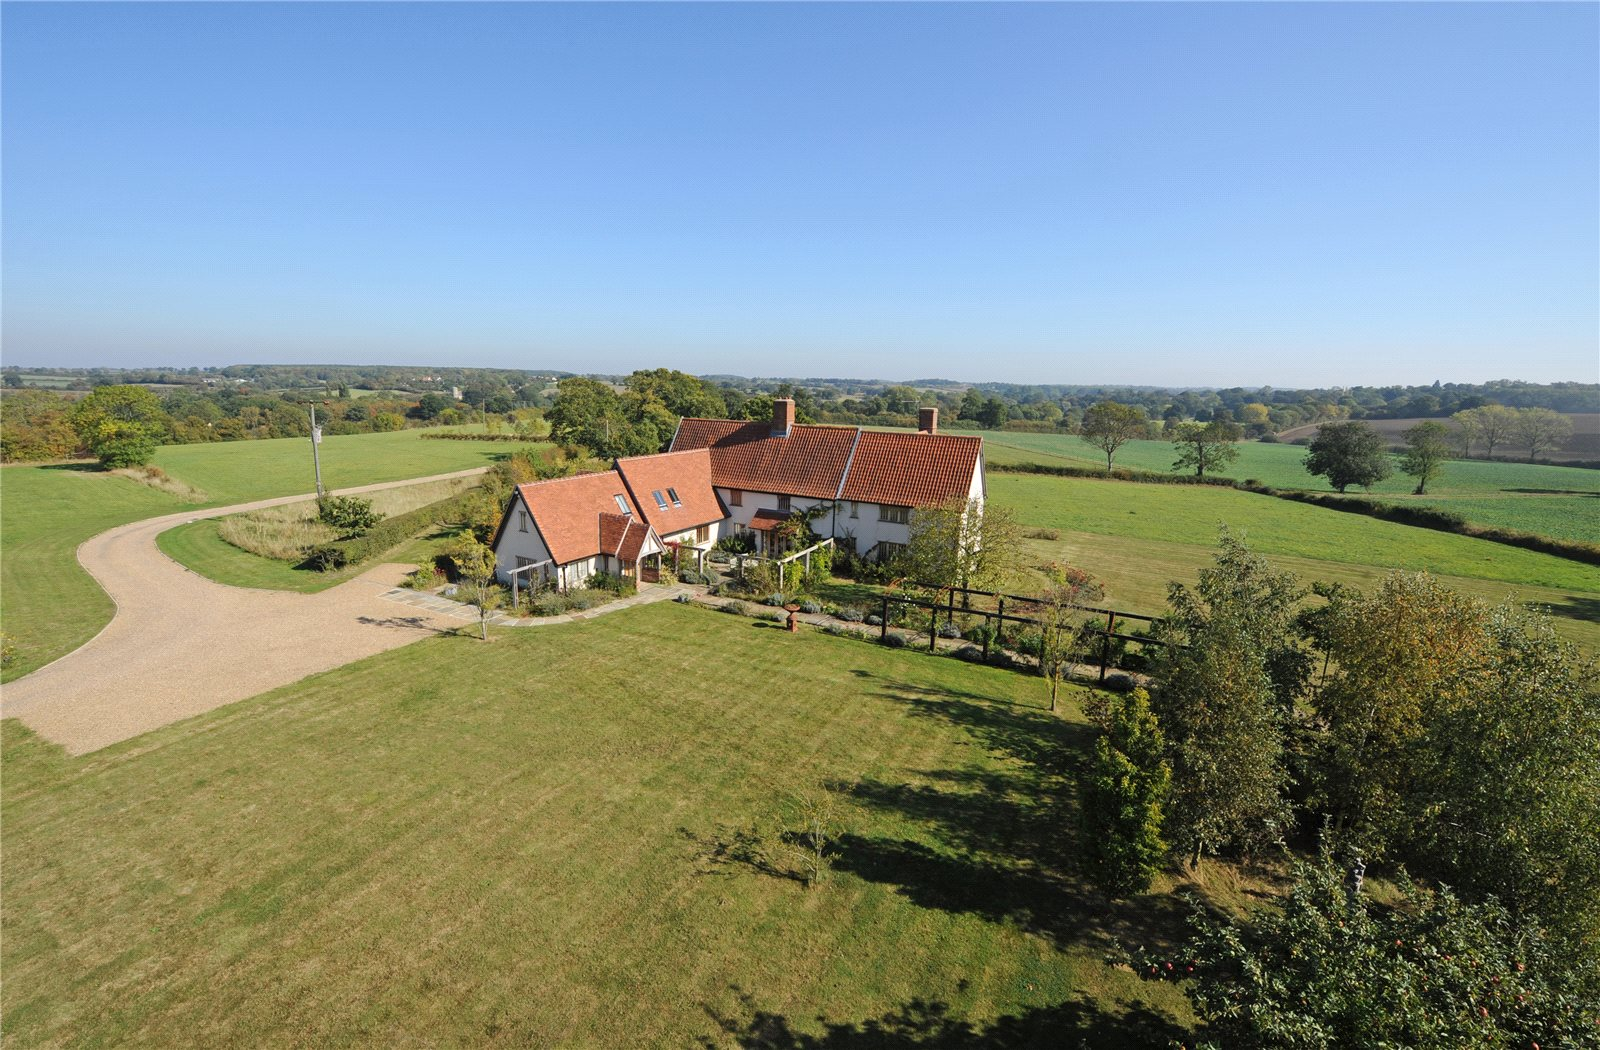 Single Family Home for Sale at Low Road, Bruisyard, Saxmundham, Suffolk, IP17 Saxmundham, England